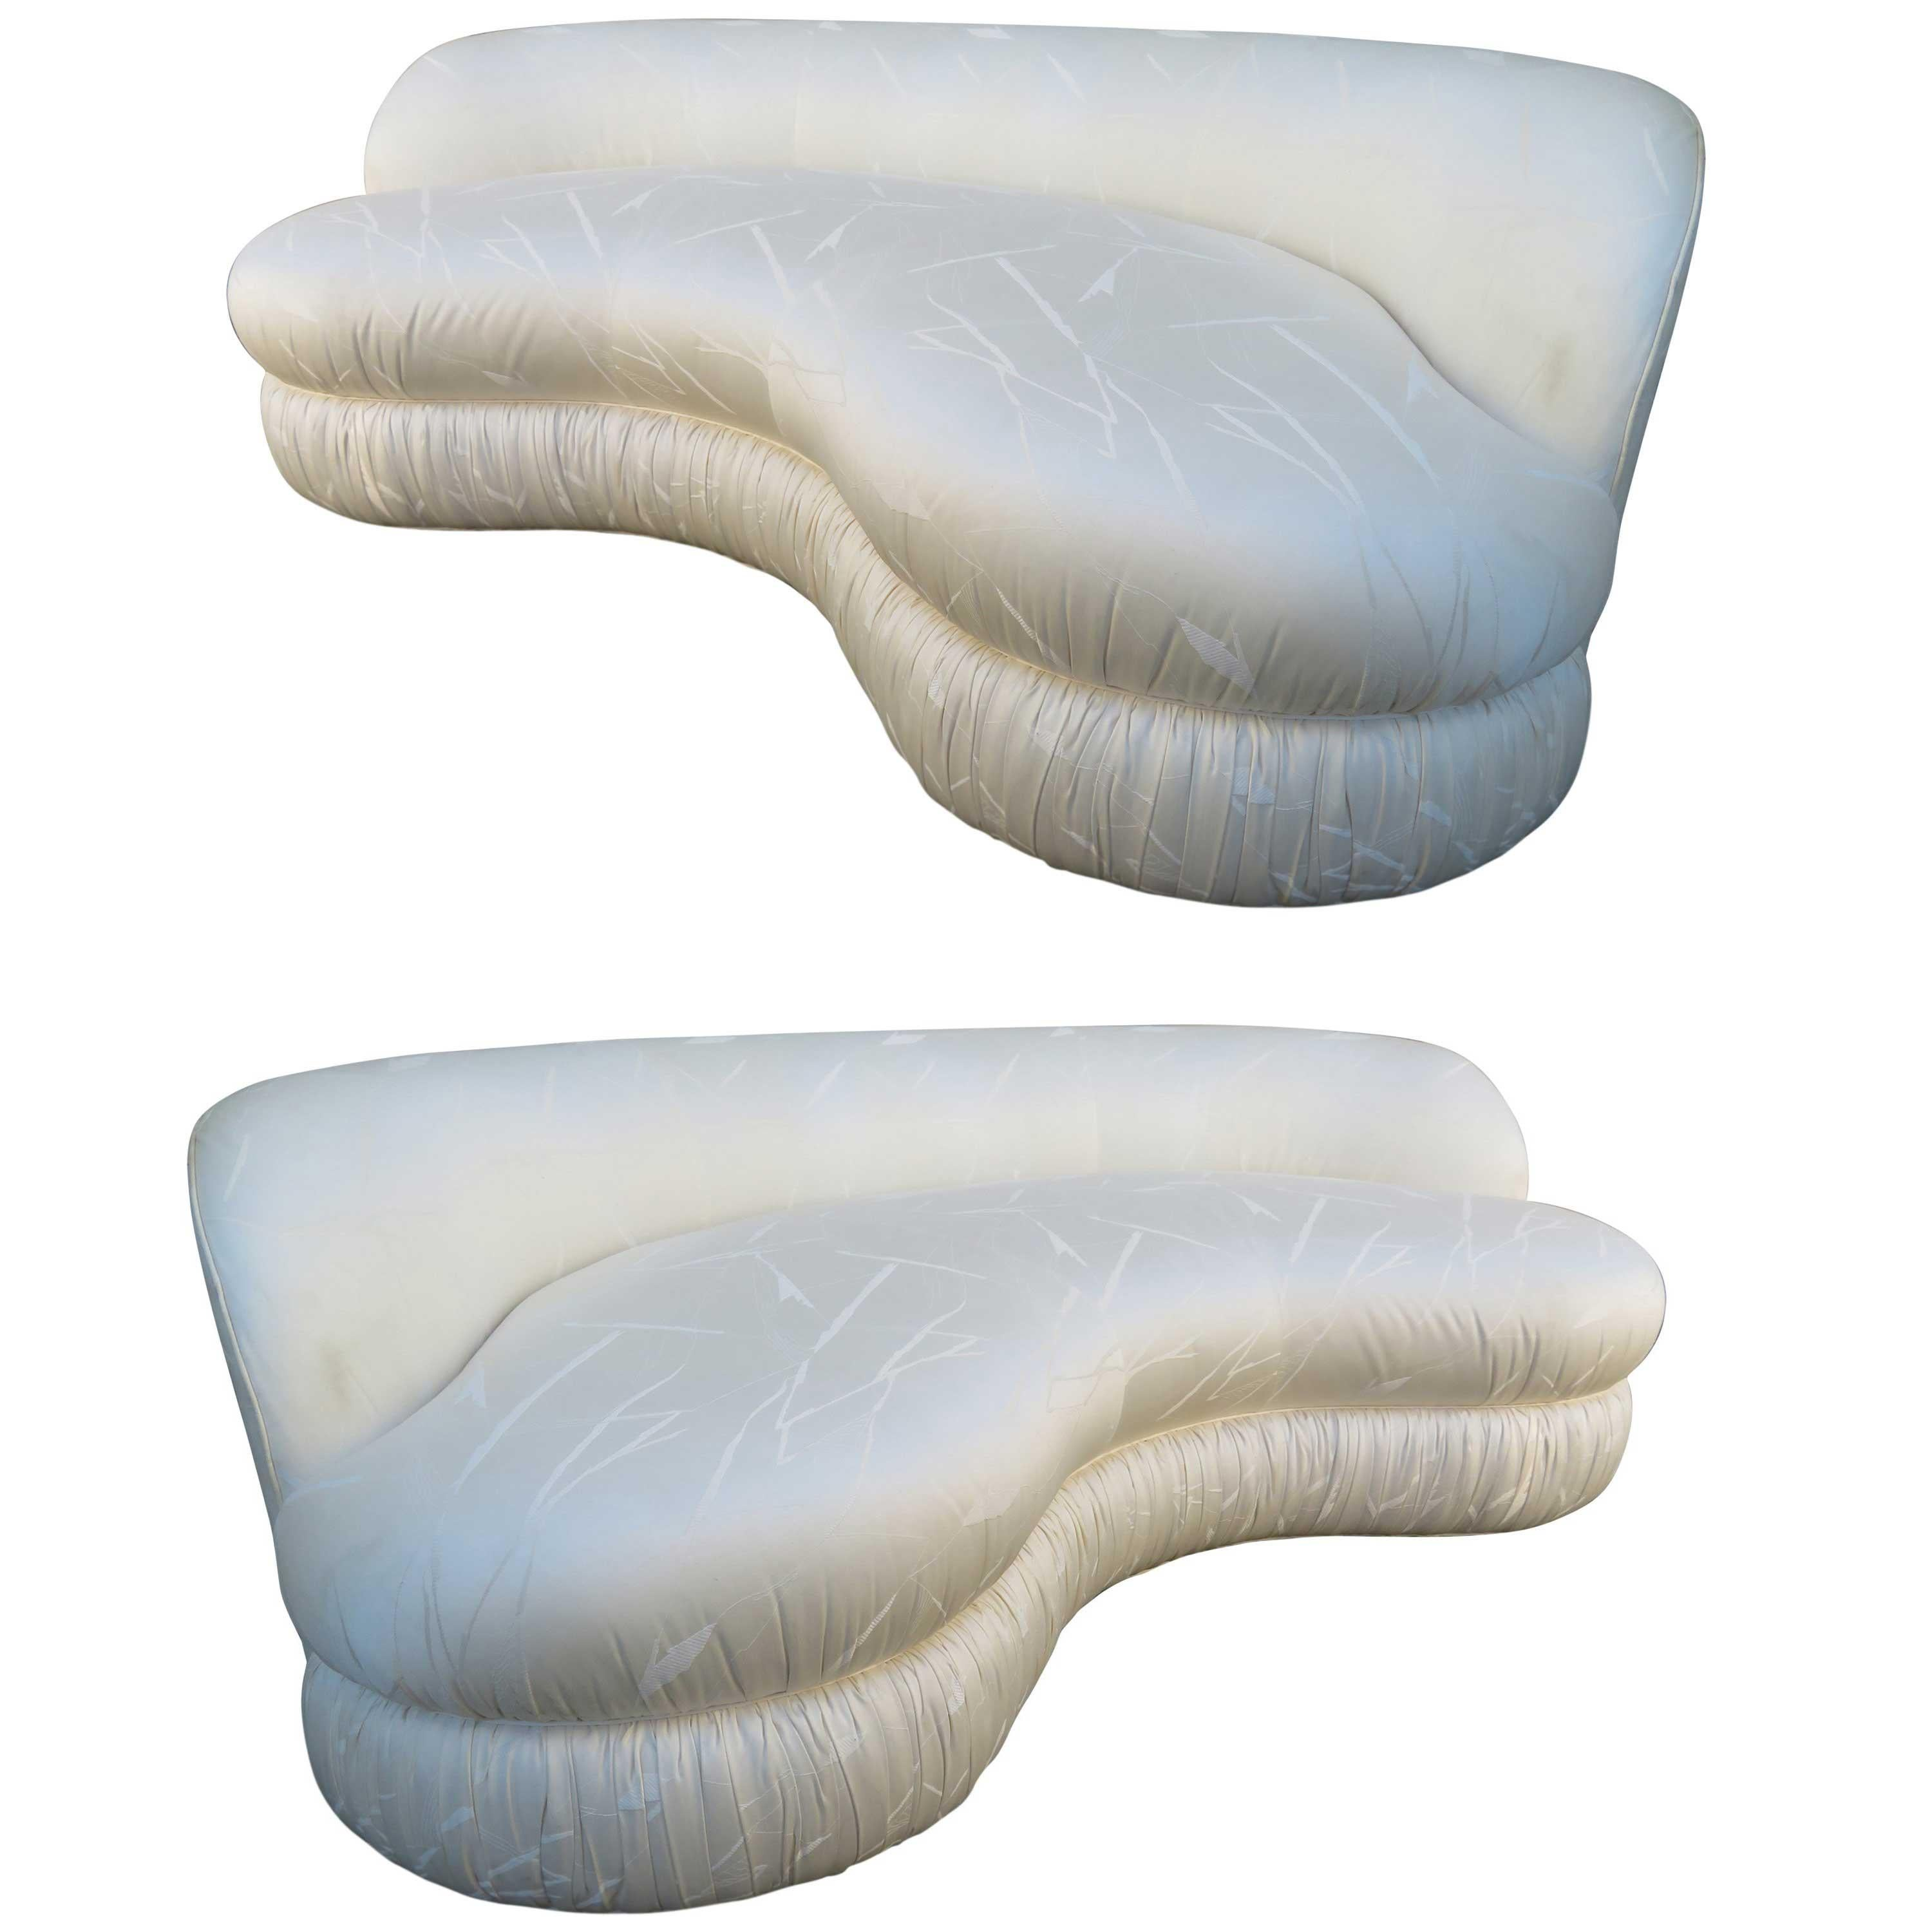 Stunning Pair of Curved Kidney Shaped Sofa Midcentury